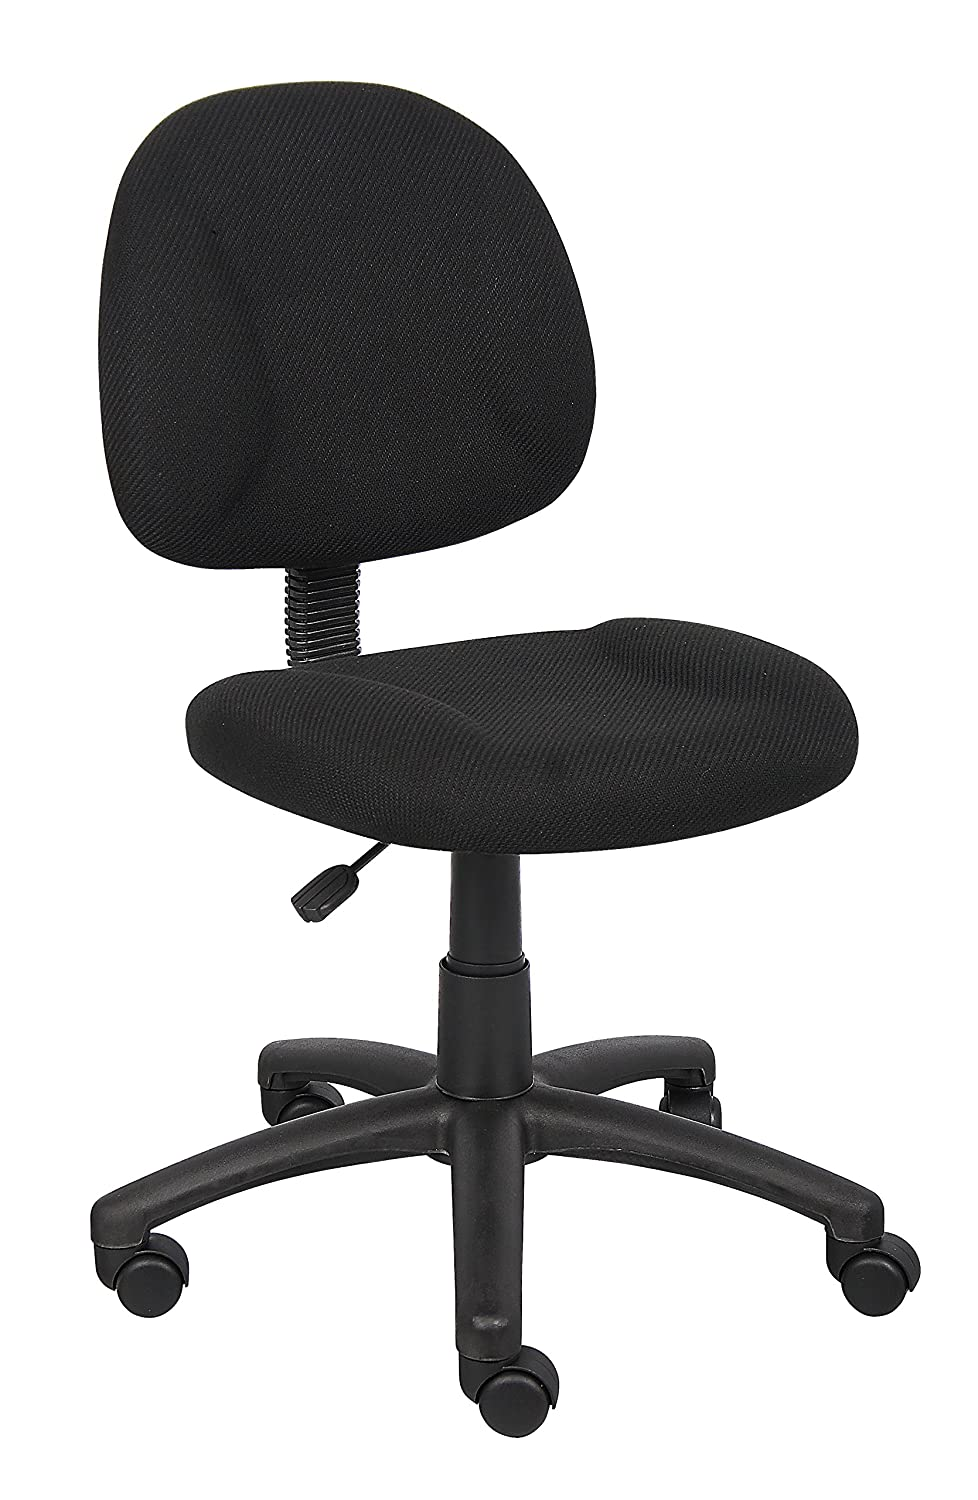 Comparison Chart Of Best Office Chair For Posture  sc 1 st  Office Chair Accessories & Best Office Chair for Posture - Top Posture Office Chairs